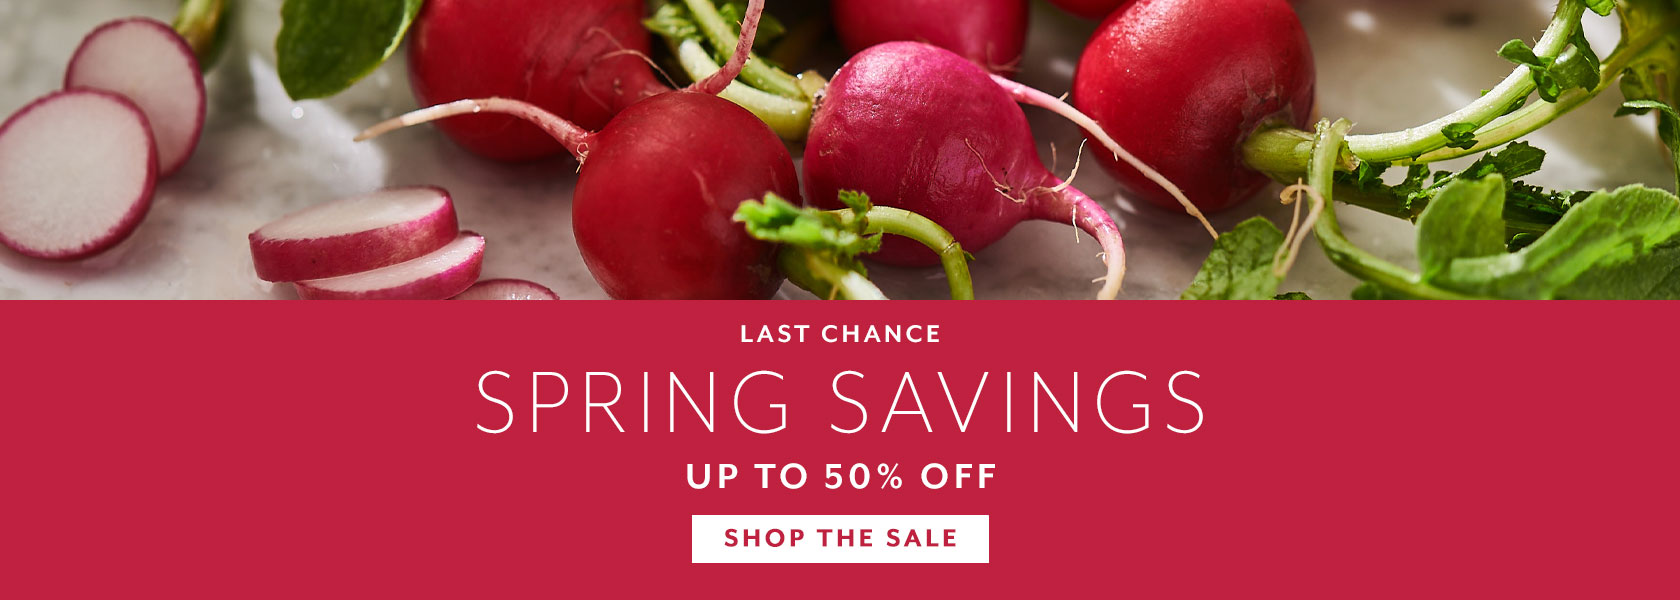 Last chance Spring Savings up to 50% off, shop the sale.